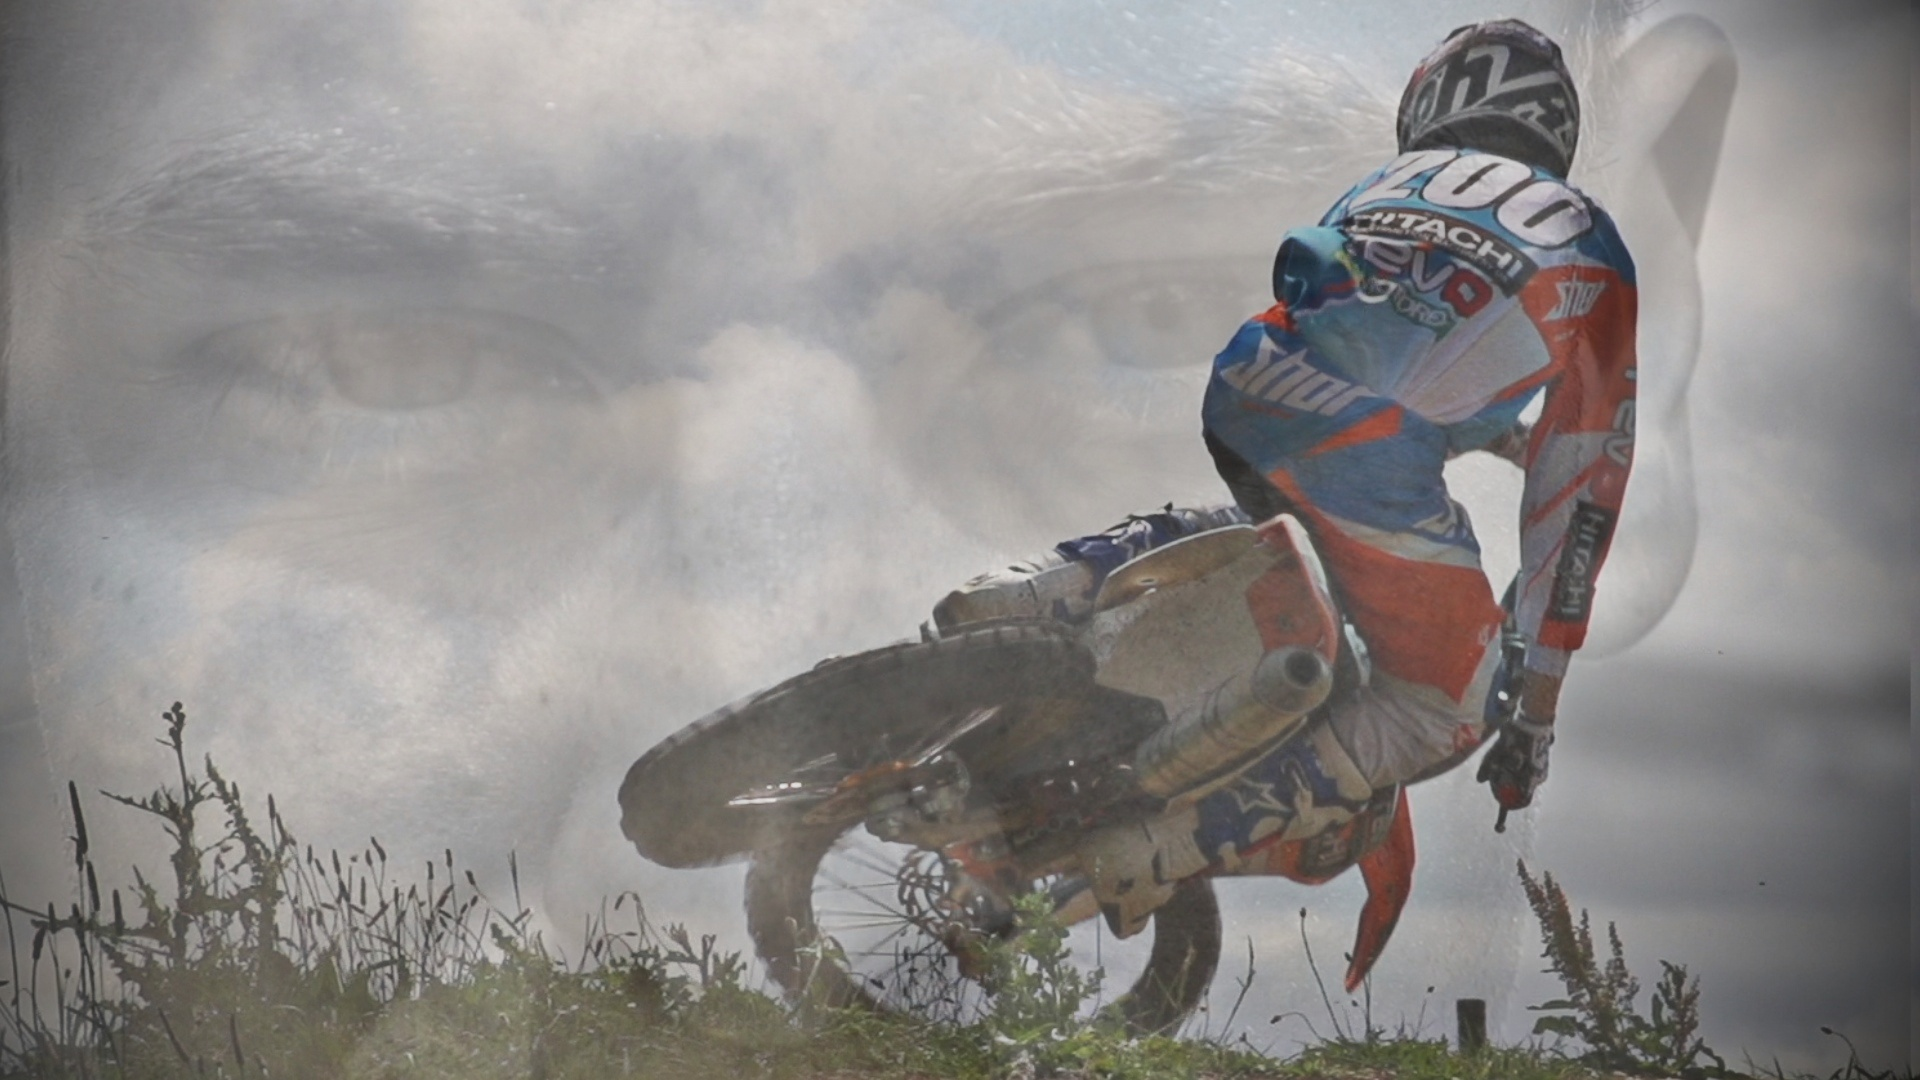 Motocross- Lose Yourself